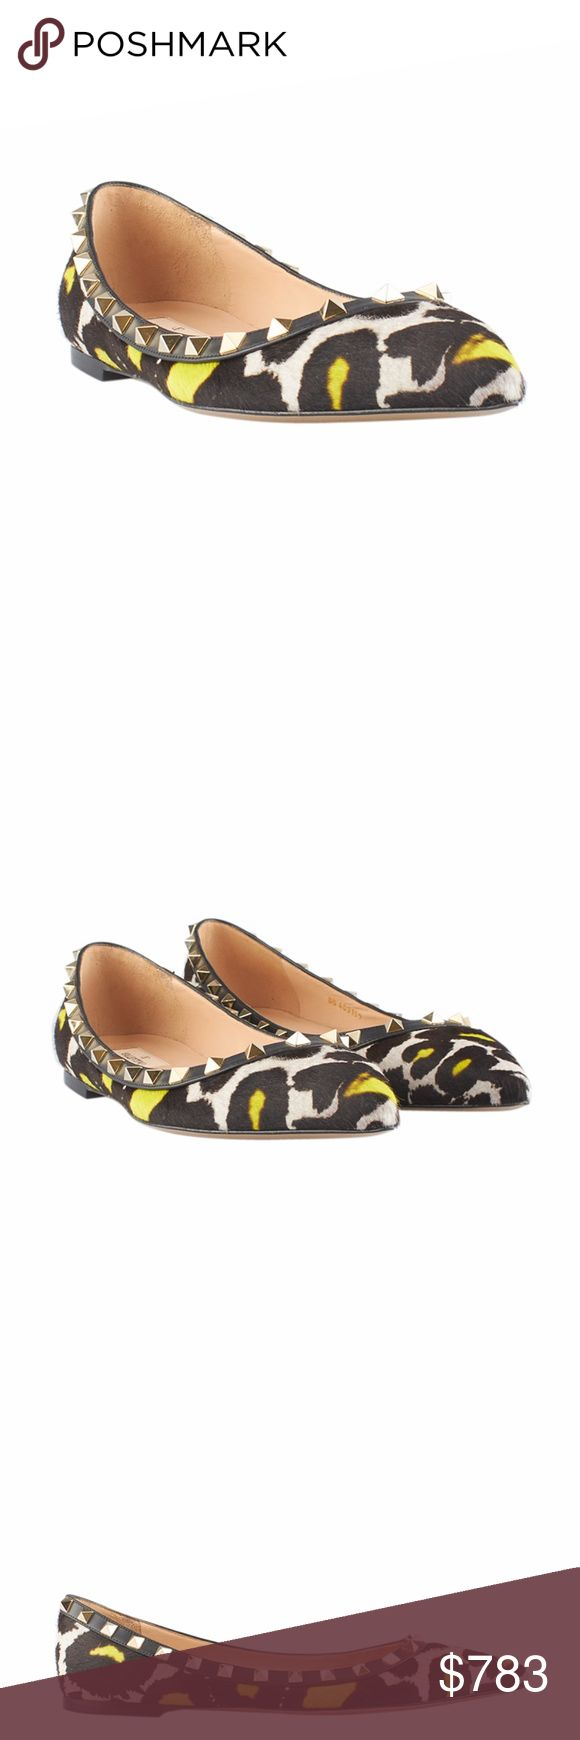 Valentino Rockstud Flats (134608) Exterior Condition: New Material: Pony Hair Origin: Italy Heel Height: Flat (0 - 1/2 in) Insole: 10.5 Sole Width: 3 These Valentino Rockstud Flats feature: New without tags Ref: 136376-134608-NCS-SH IPL: SHO-4 Valentino Shoes Flats & Loafers